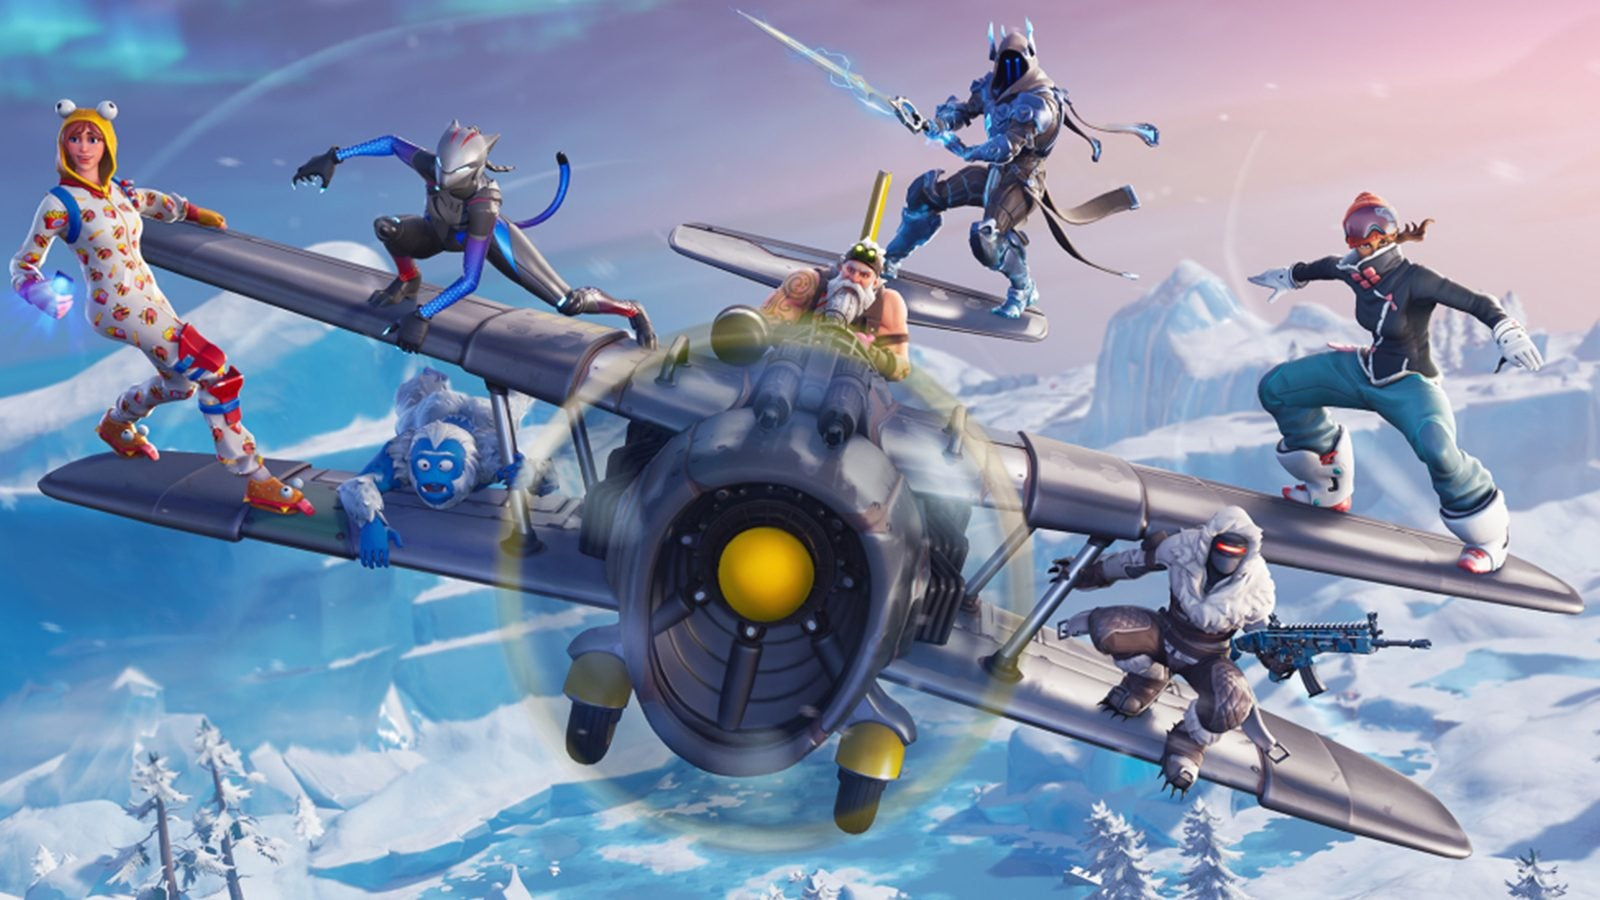 Fortnite Developers Talk Respawning And Planes Being Vaulted In Season 8